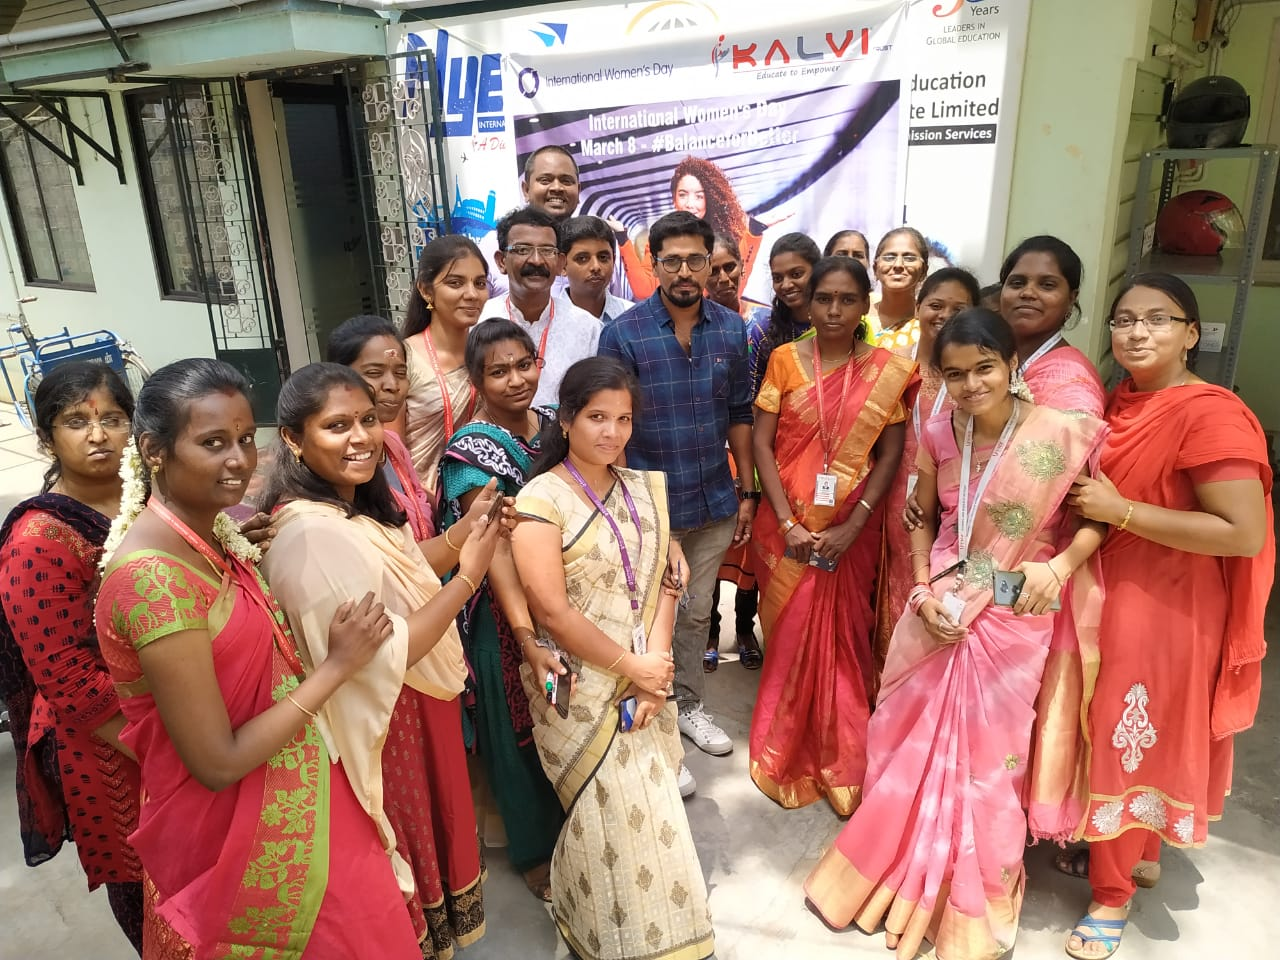 The Celebration of International Women's Day for KALVI Trust